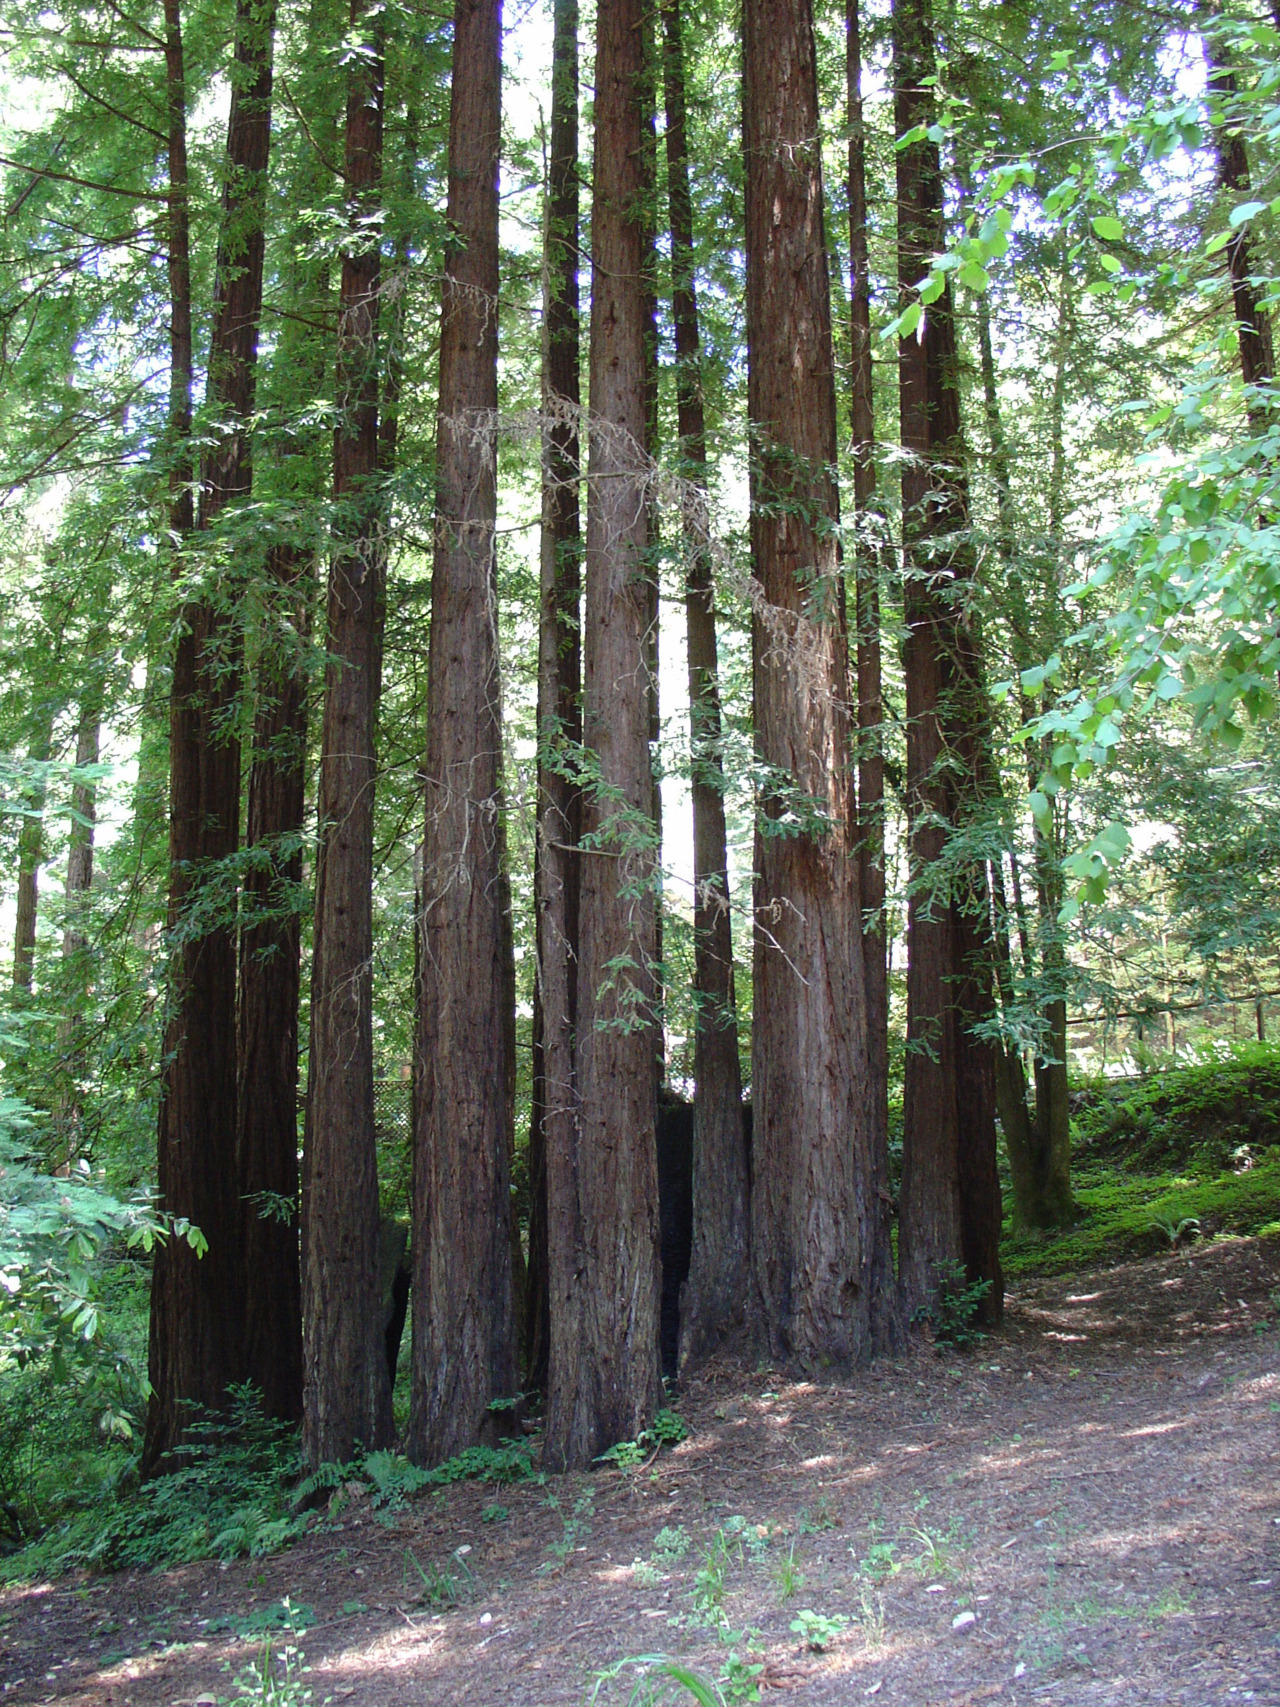 A circular growth of coastal redwoods like this is called a fairy ring. When a tree is cut down, trees regrow from the underground root system, clones of the original. Though they appear separate, all of the trees in a fairy ring are part of the same organism.